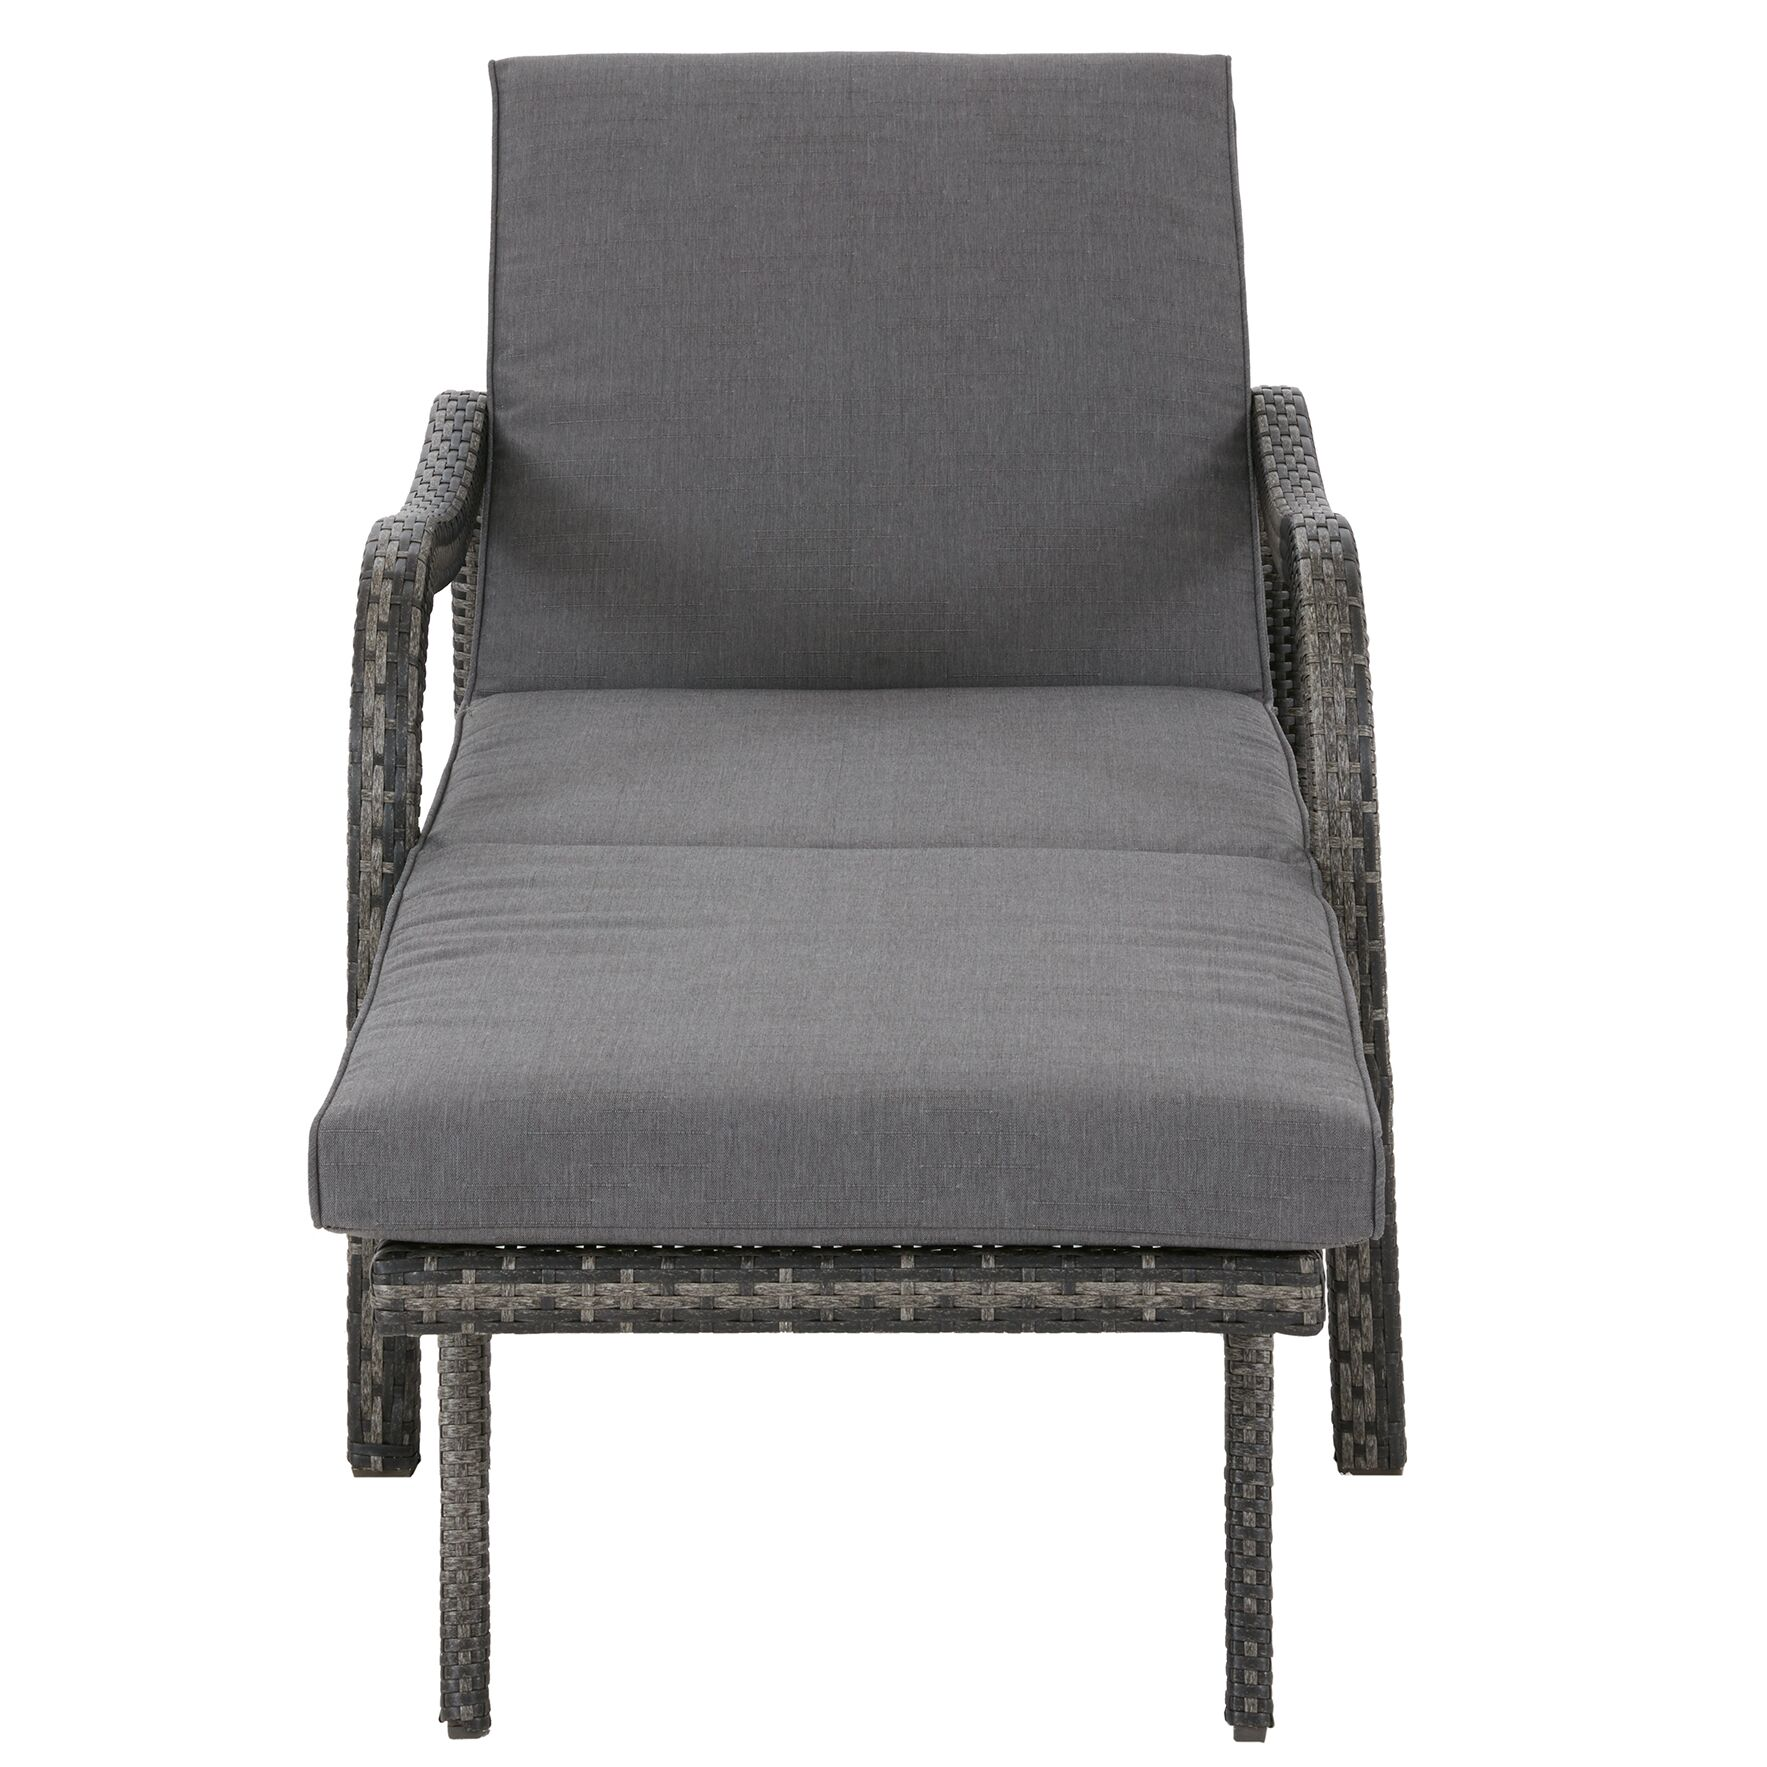 Agnes Convertible Chaise Lounge Fabric: Dark Grey